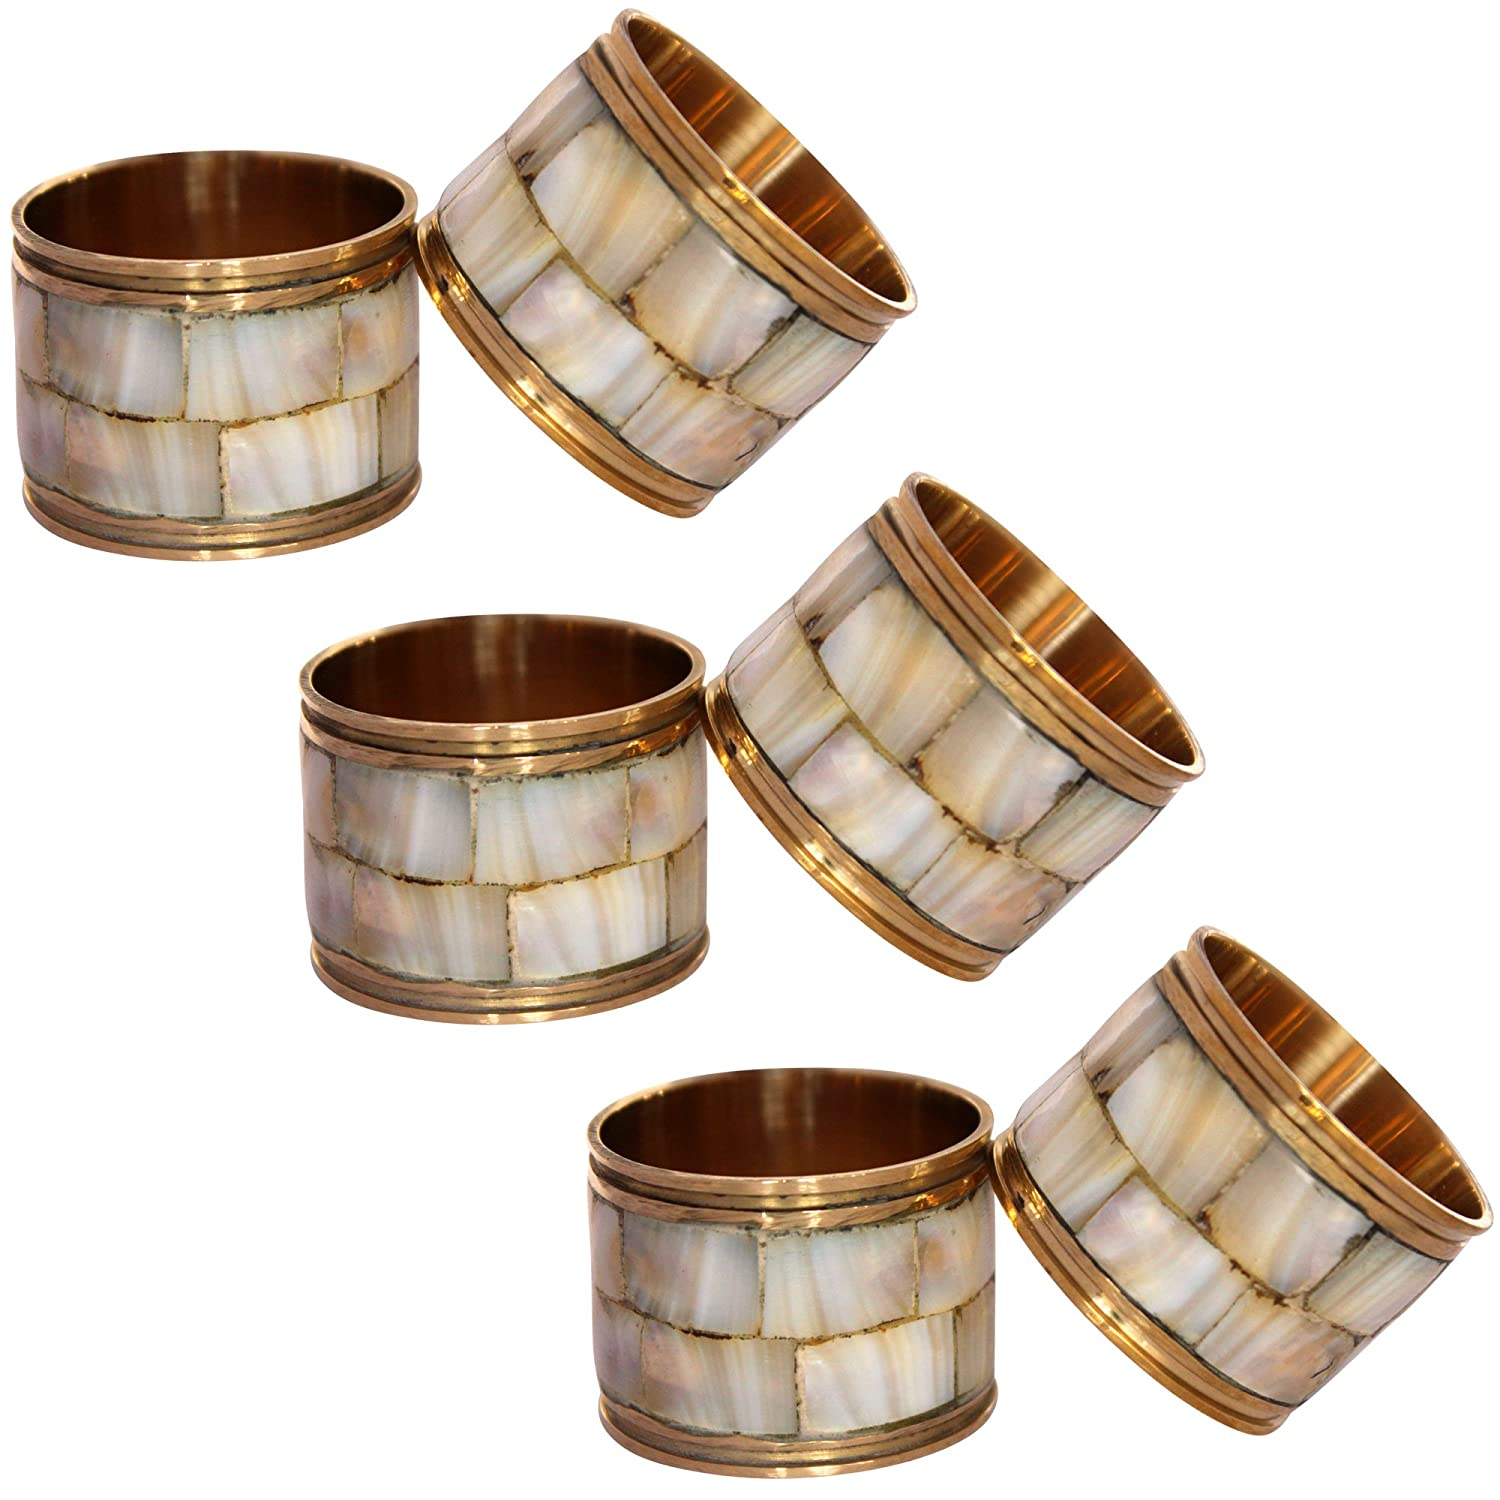 Wooden Napkin Rings Set of 6 - Napkin Ring for Wedding | Crafts | Dinning Tables | Parties | Everyday Decor NR37 Indian Glance